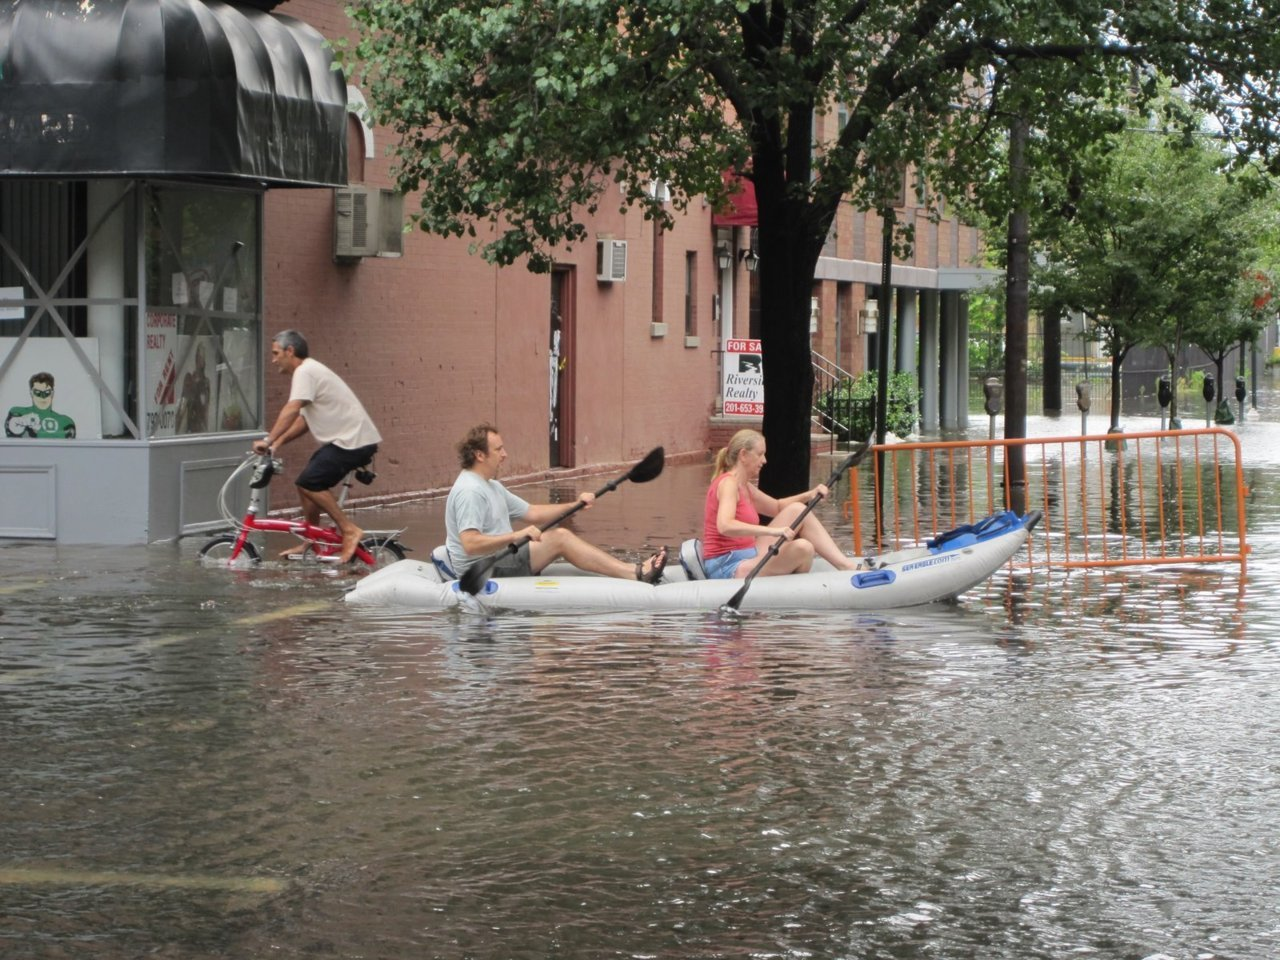 Kayaking down 1st Street in Hoboken